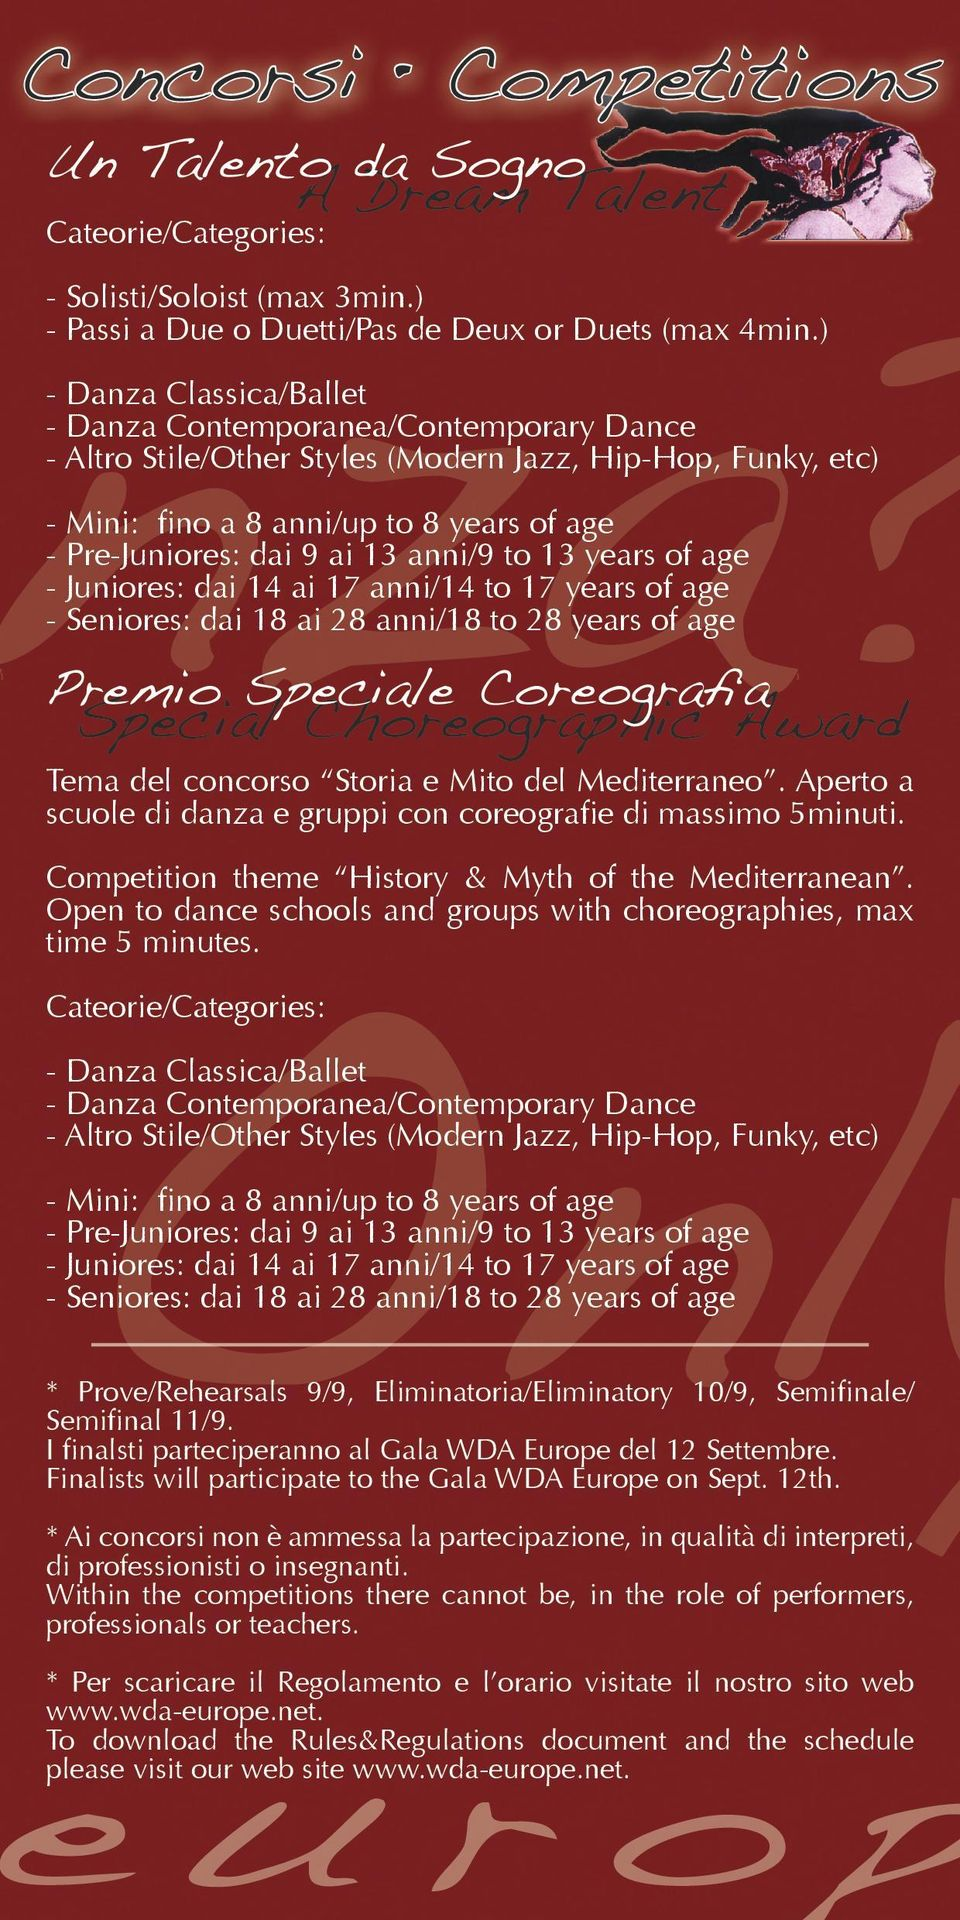 anni/9 to 13 years of age - Juniores: dai 14 ai 17 anni/14 to 17 years of age - Seniores: dai 18 ai 28 anni/18 to 28 years of age Premio Speciale Coreografia Special Choreographic Award Tema del